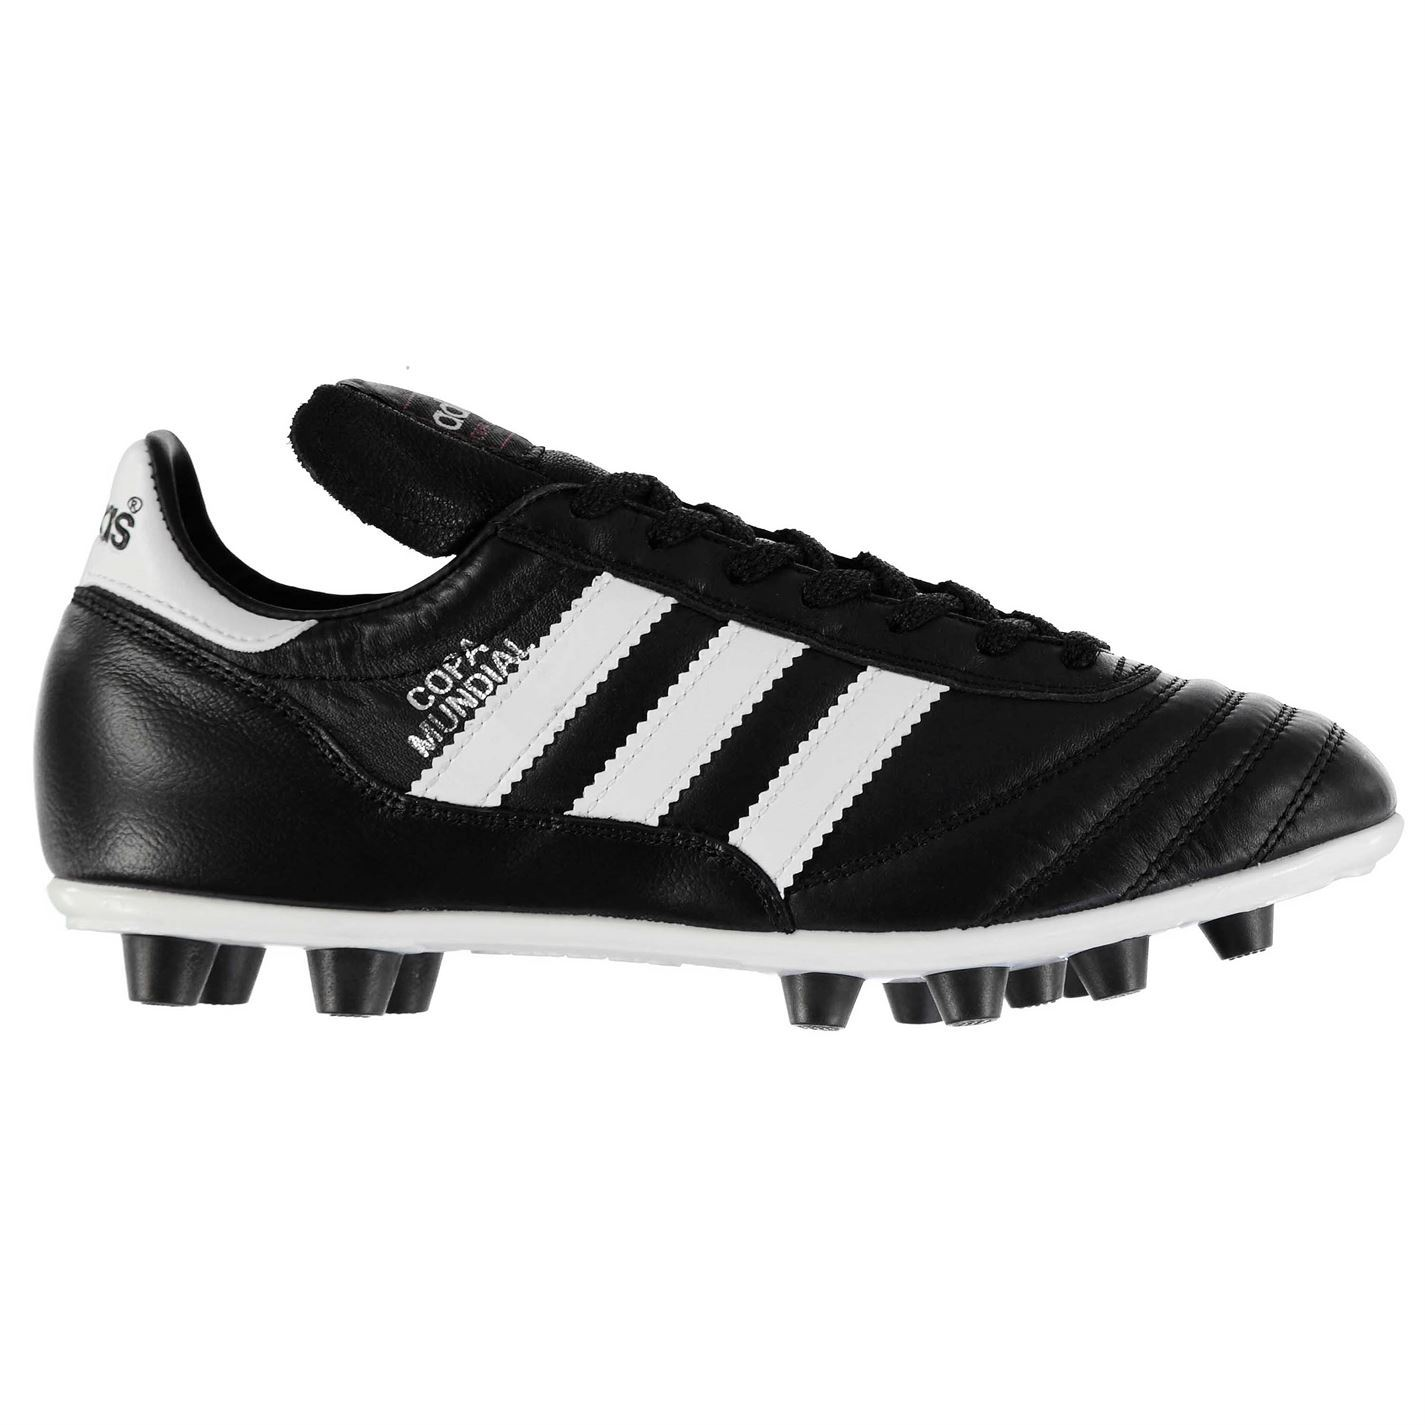 innovative design d1ee4 5cbf0 ... adidas Copa Mundial FG Firm Ground Football Boots Juniors Black Soccer  Shoes ...